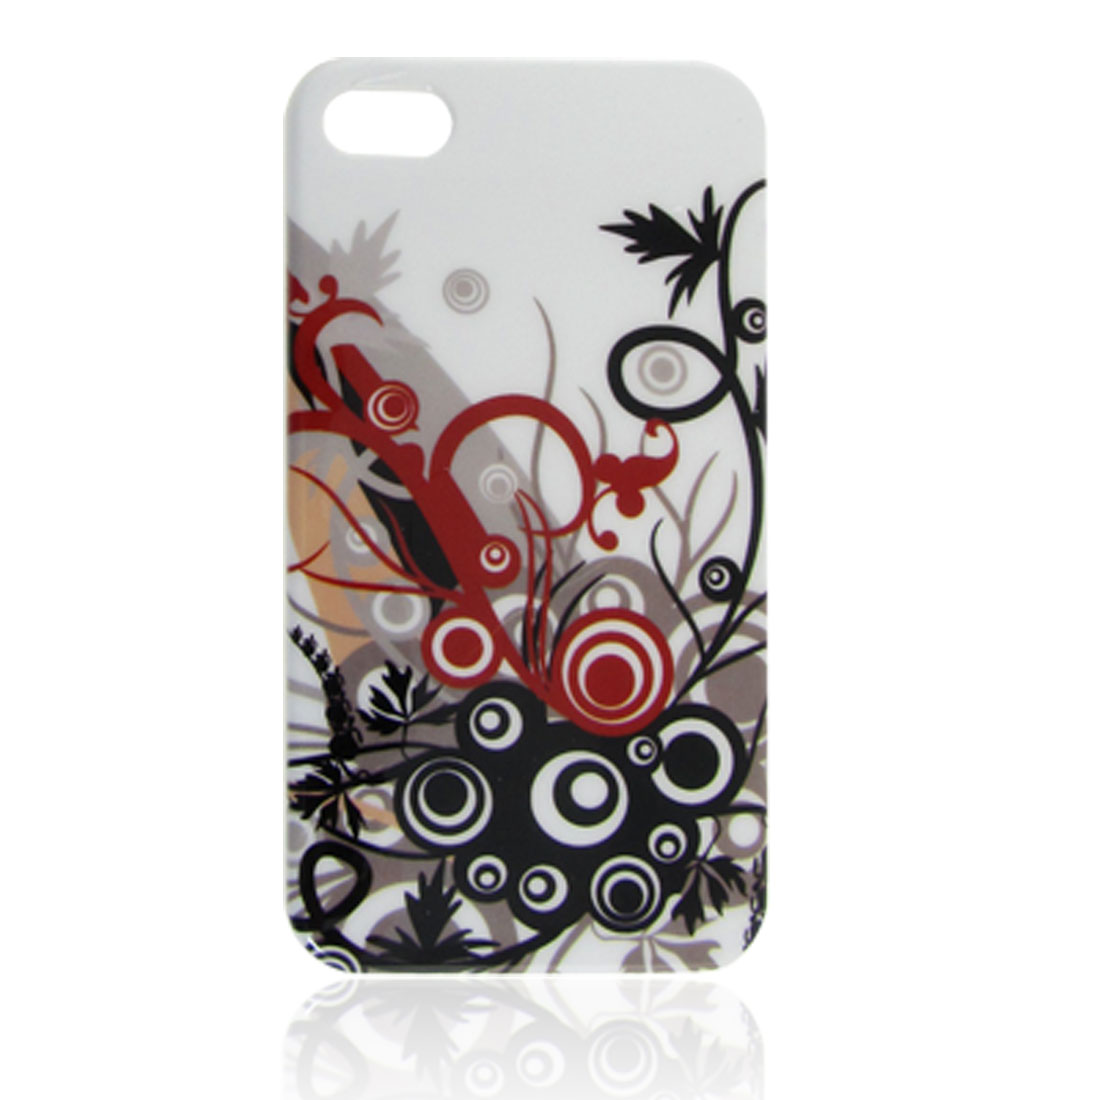 Black Red Flowery Printed Hard IMD Plastic Back Cover Case White for iPhone 4 4G 4GS 4S